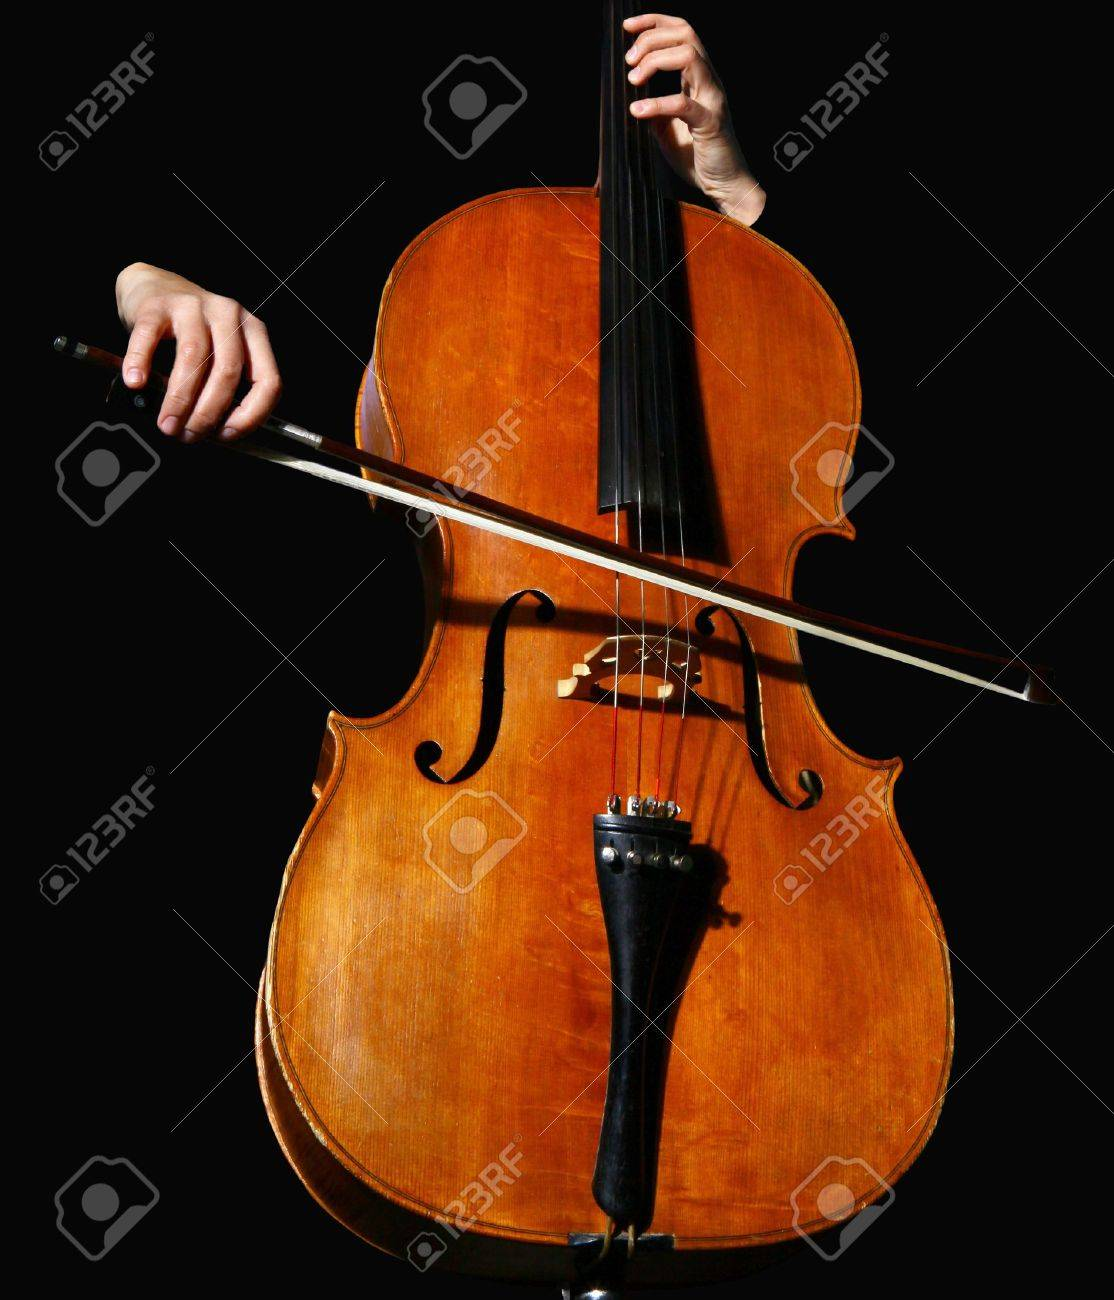 Close up of a cello on black background Stock Photo - 6136179